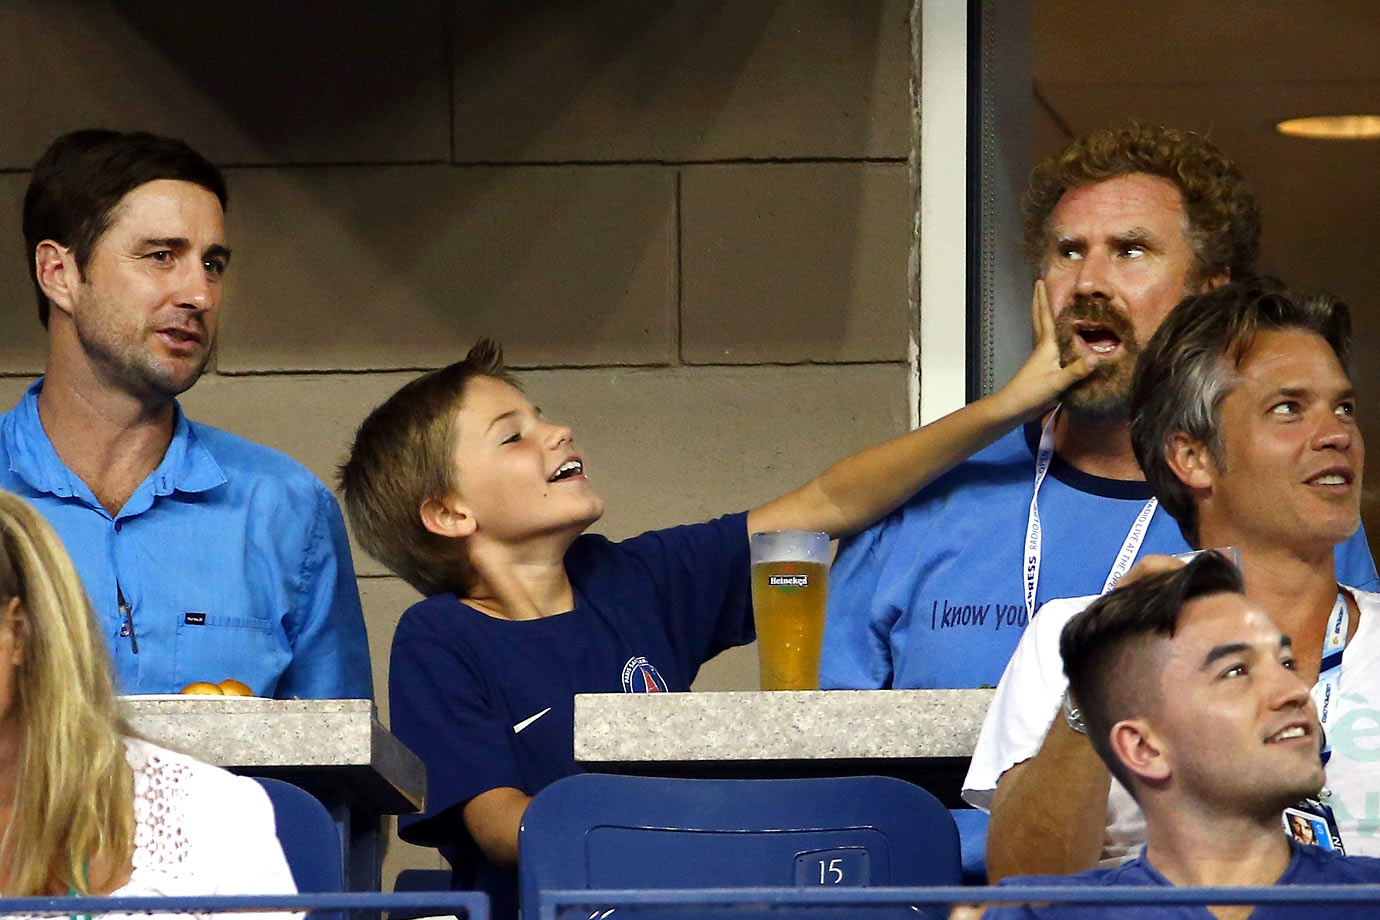 Luke Wilson, Will Ferrell and Ferrell's son Mattias watch the match between Roger Federer and Marcel Granollers on Day 7 of the US Open on Aug. 31, 2014 at the USTA Billie Jean King National Tennis Center in Flushing, N.Y.